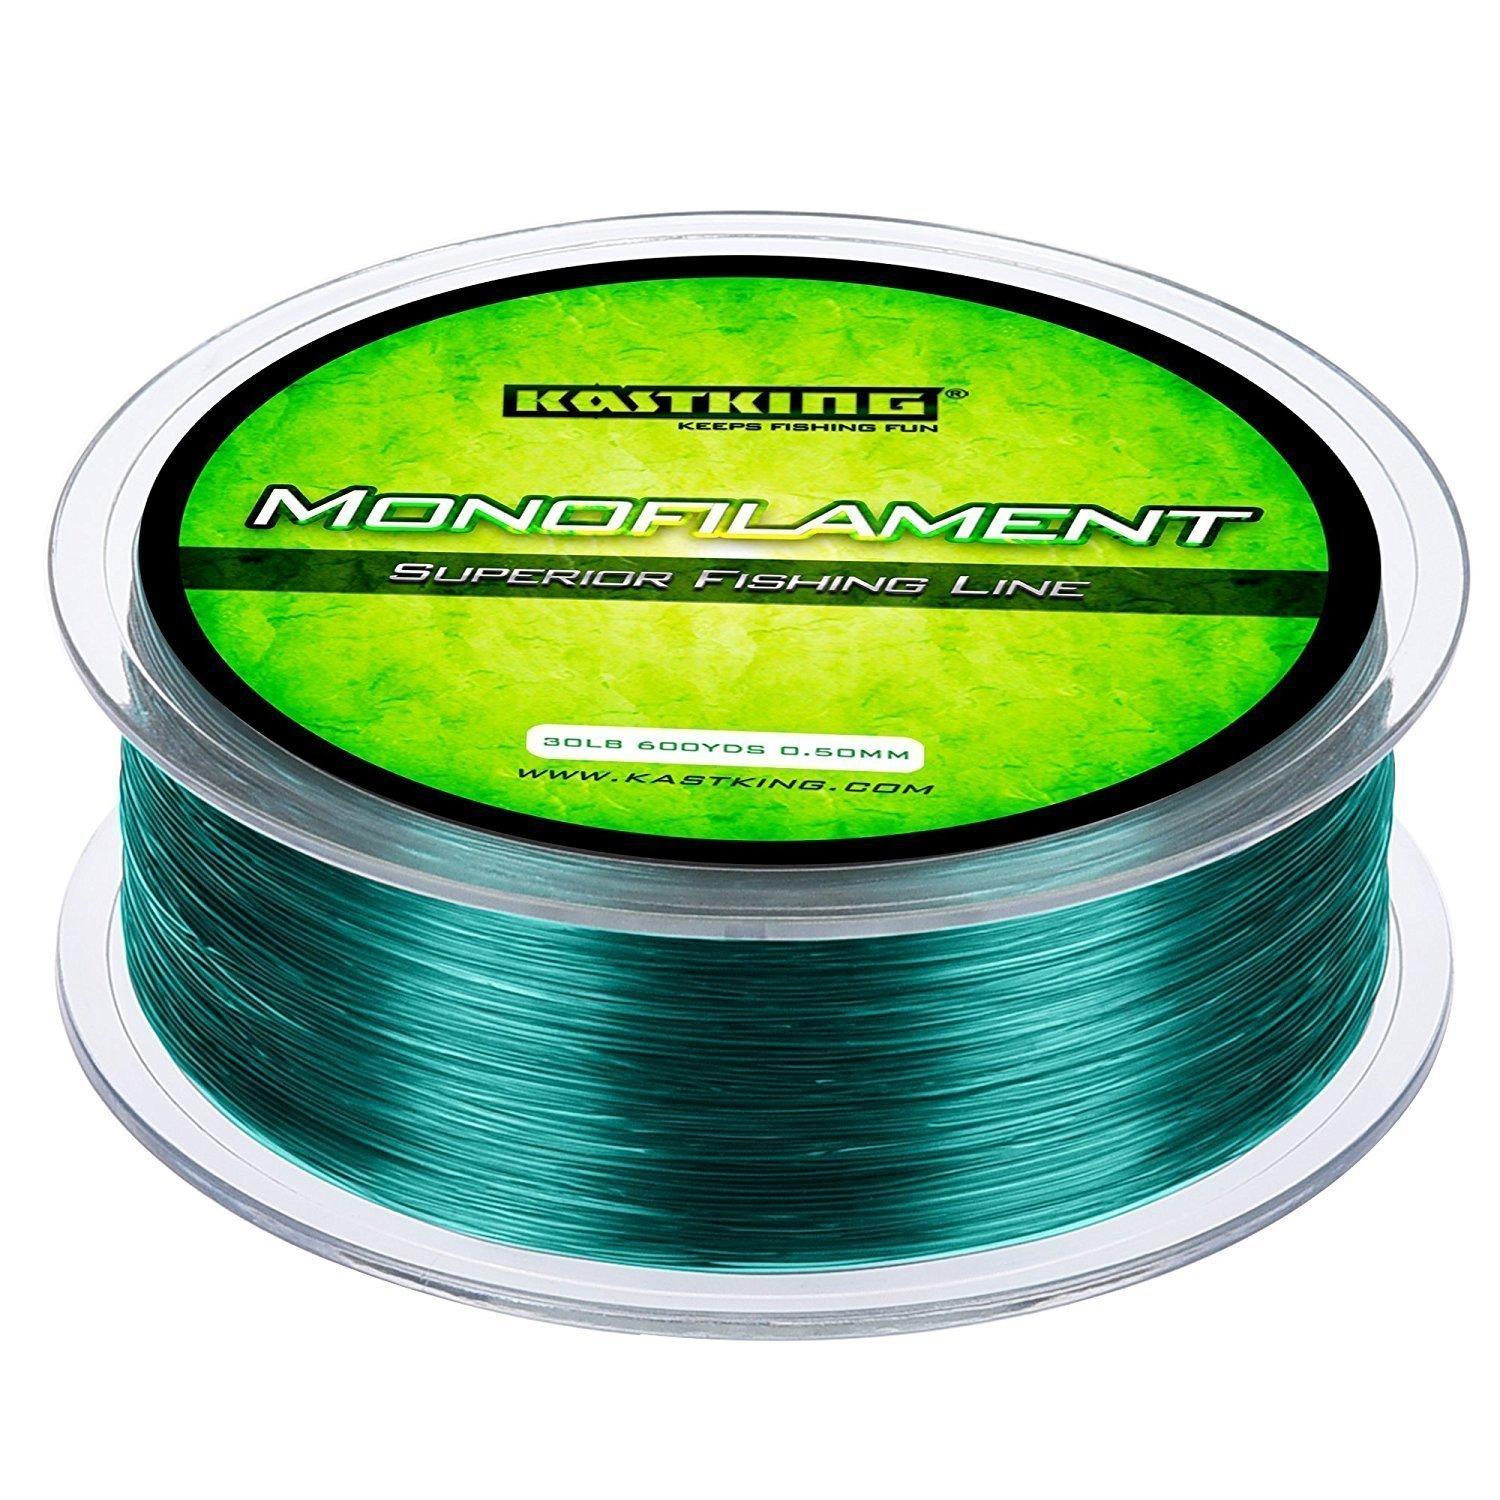 Amazon.com : KastKing Worlds Premium Monofilament 274M/300 Yards - 15LB : Sports & Outdoors